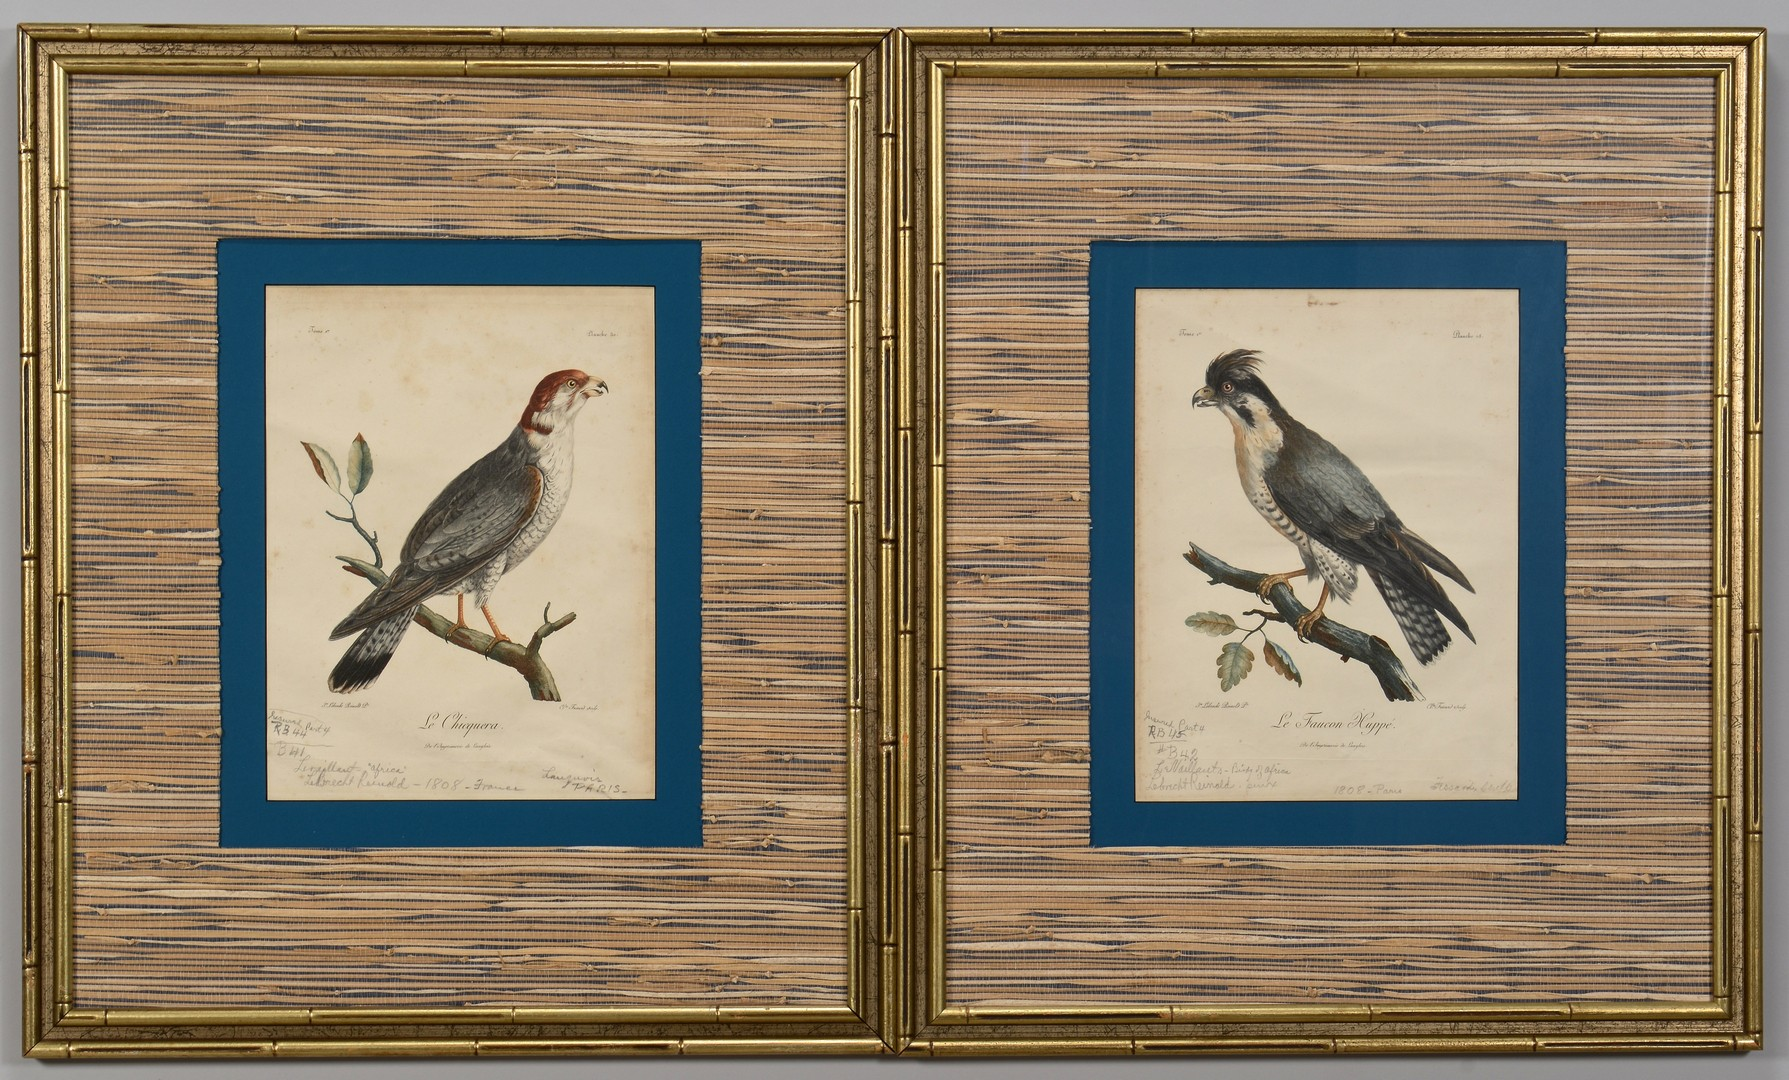 Lot 3832451: Pr C. Fessard Bird Engravings